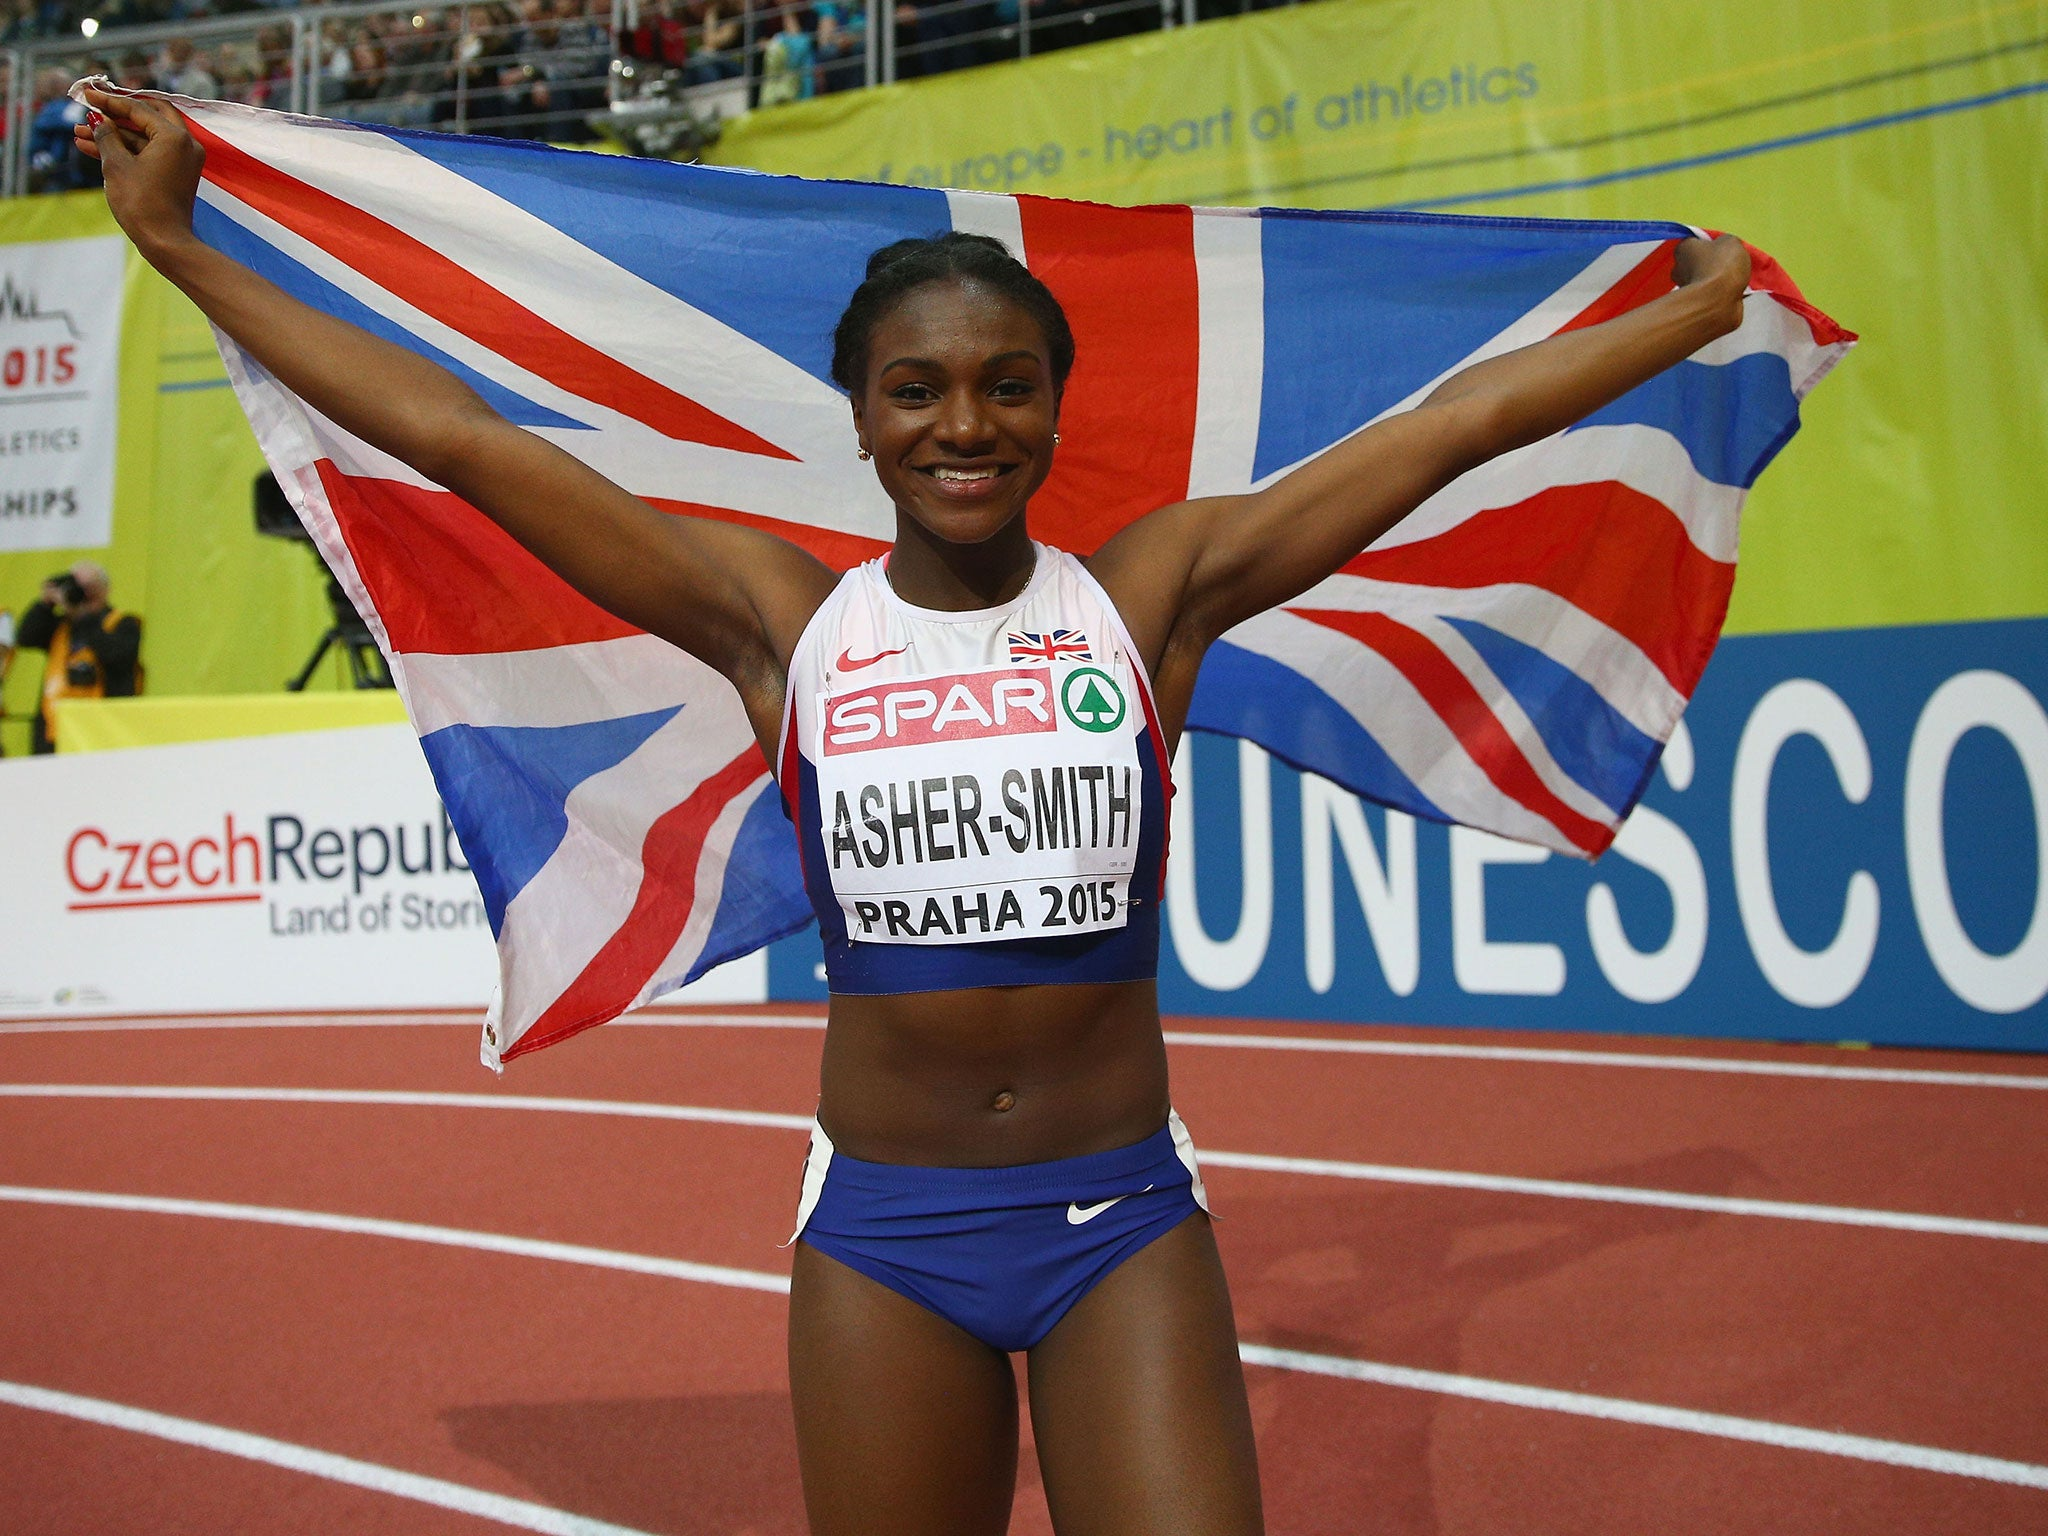 Photos Dina Asher-Smith nudes (71 foto and video), Sexy, Hot, Selfie, legs 2018